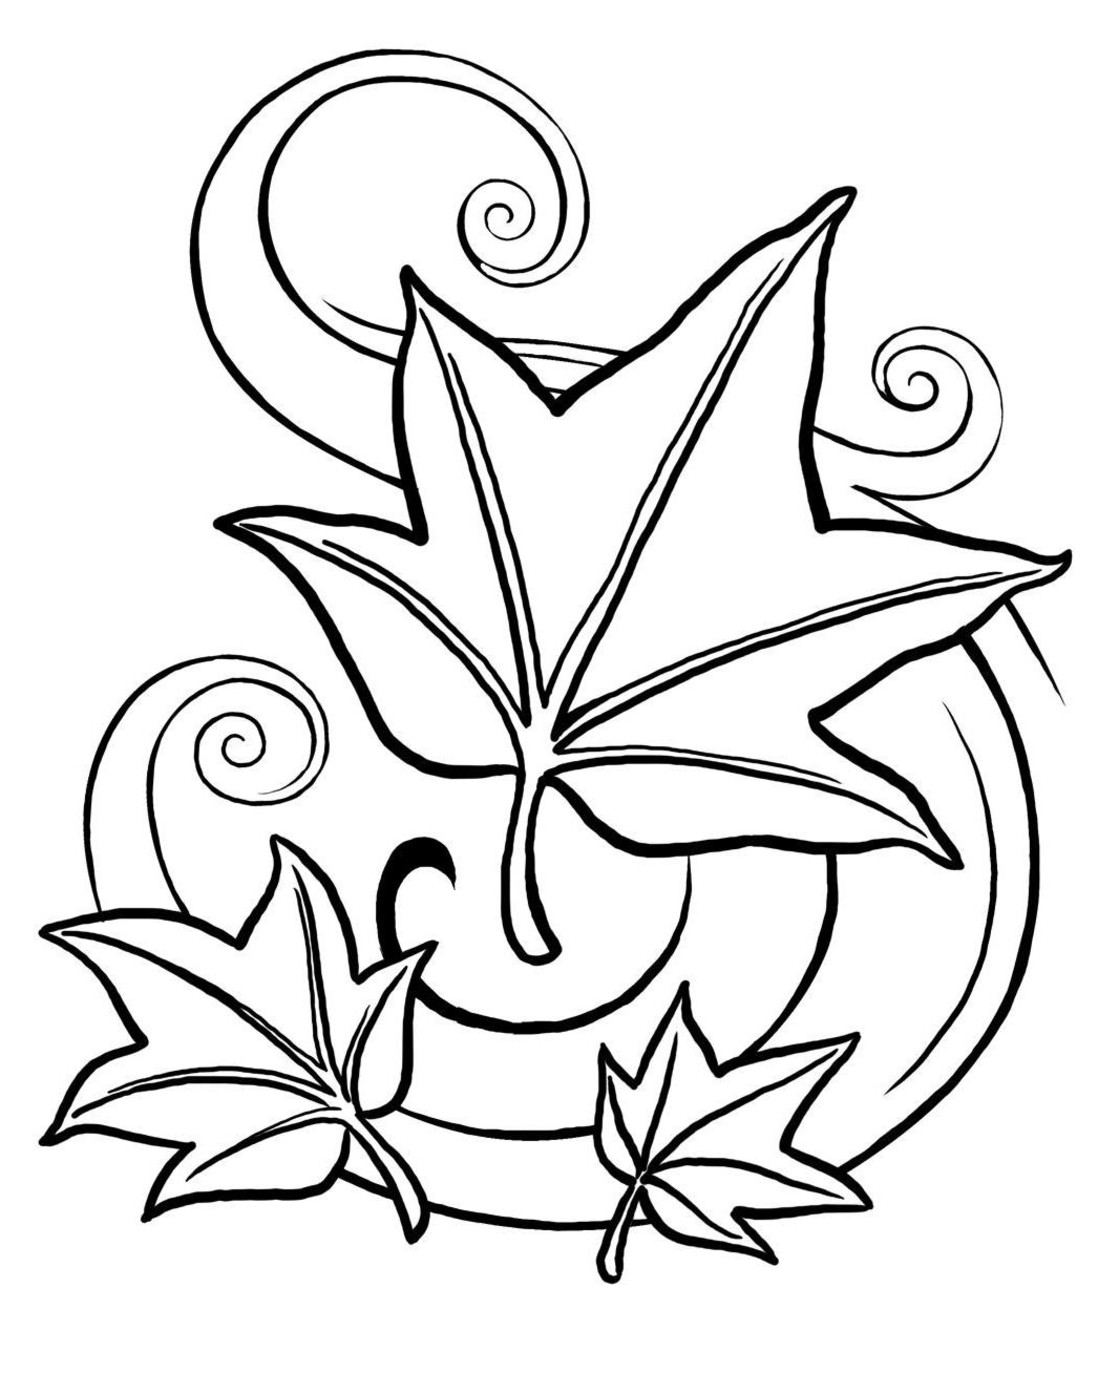 coloring fall pictures fall things coloring pages for kids autumn printables pictures coloring fall